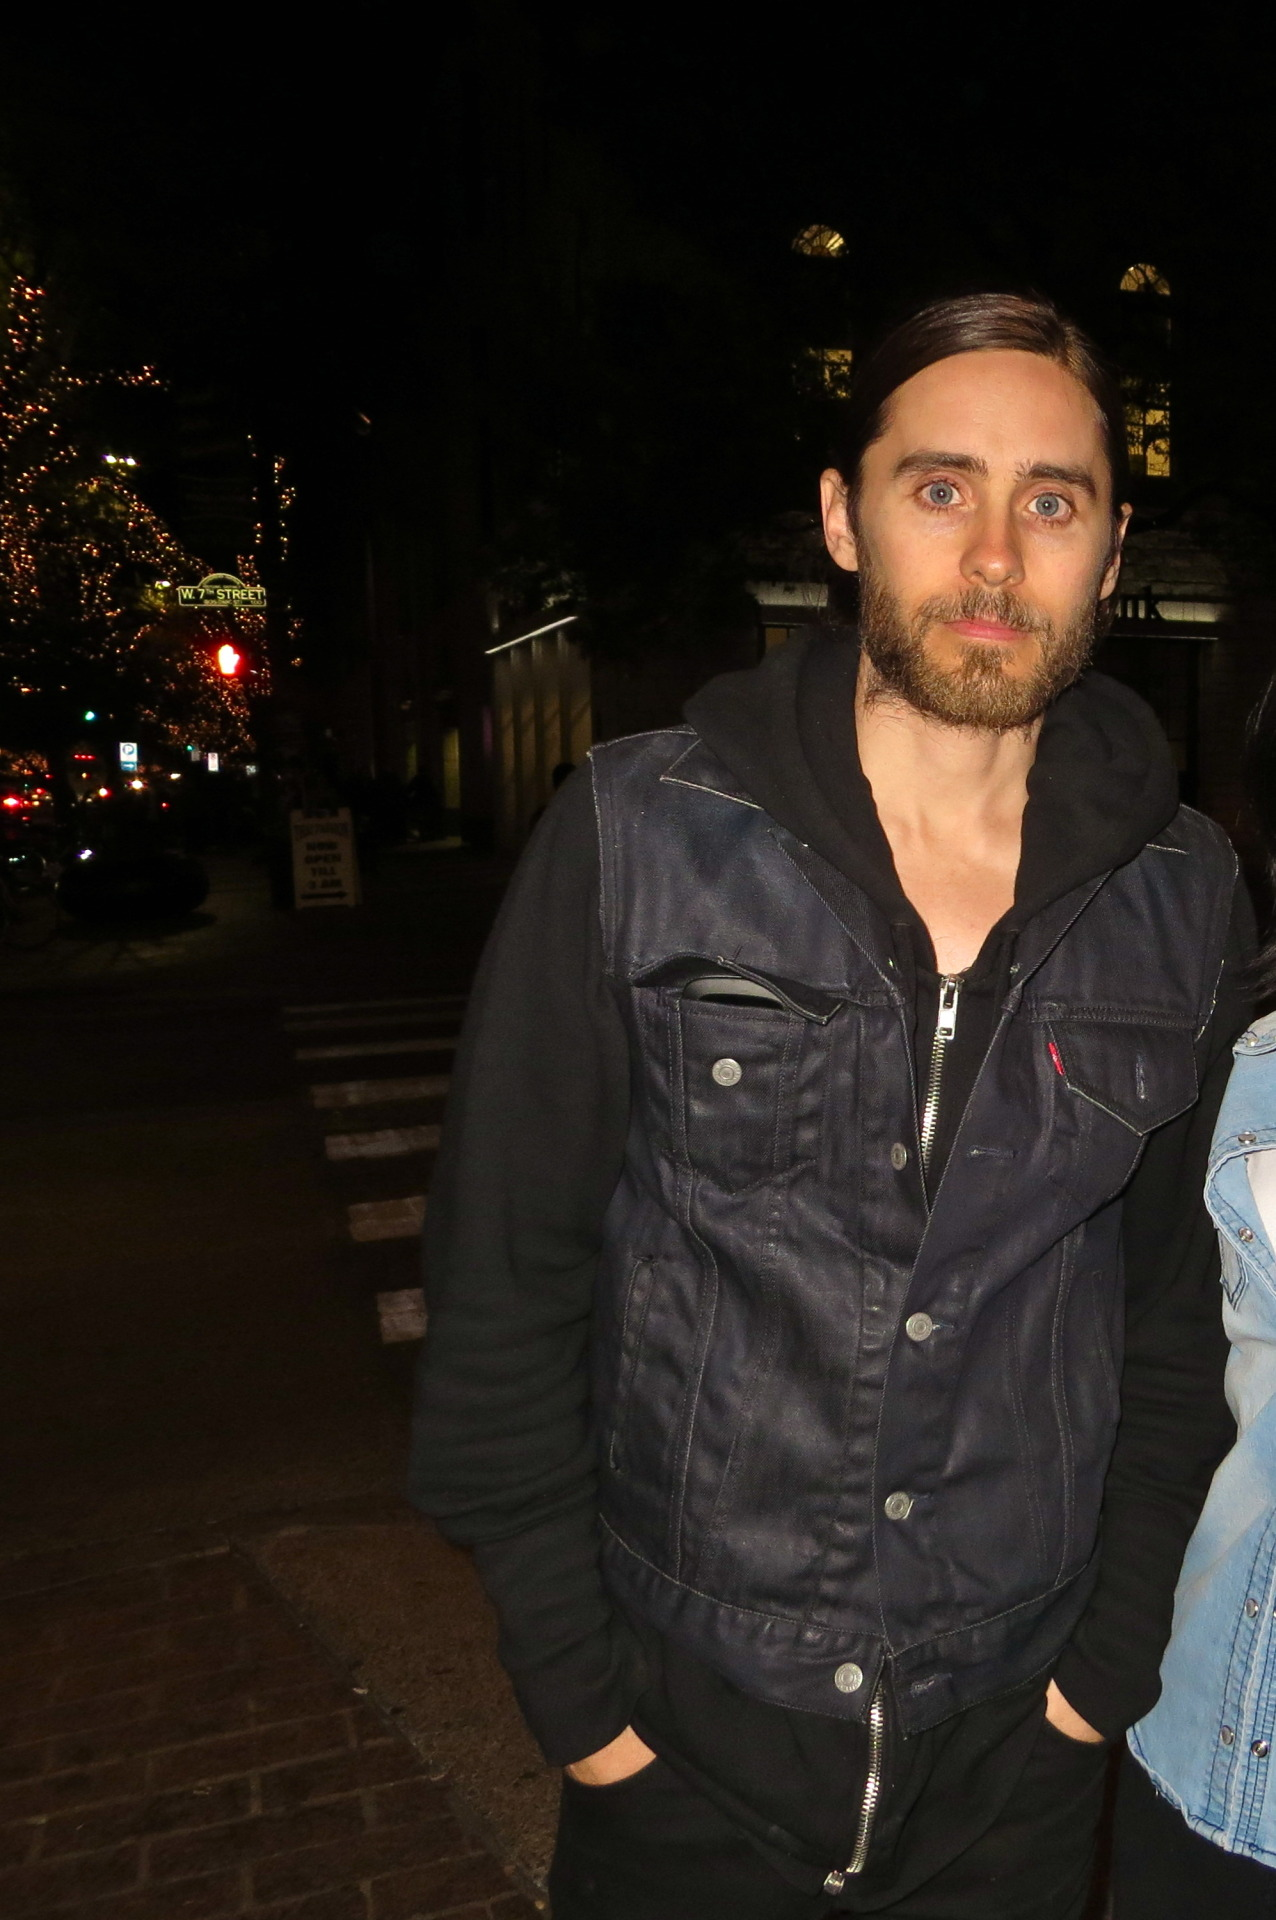 I RAN INTO JARED LETO TWO DAYS IN A ROW DURING SXSW!! MY LIFE IS COMPLETE!